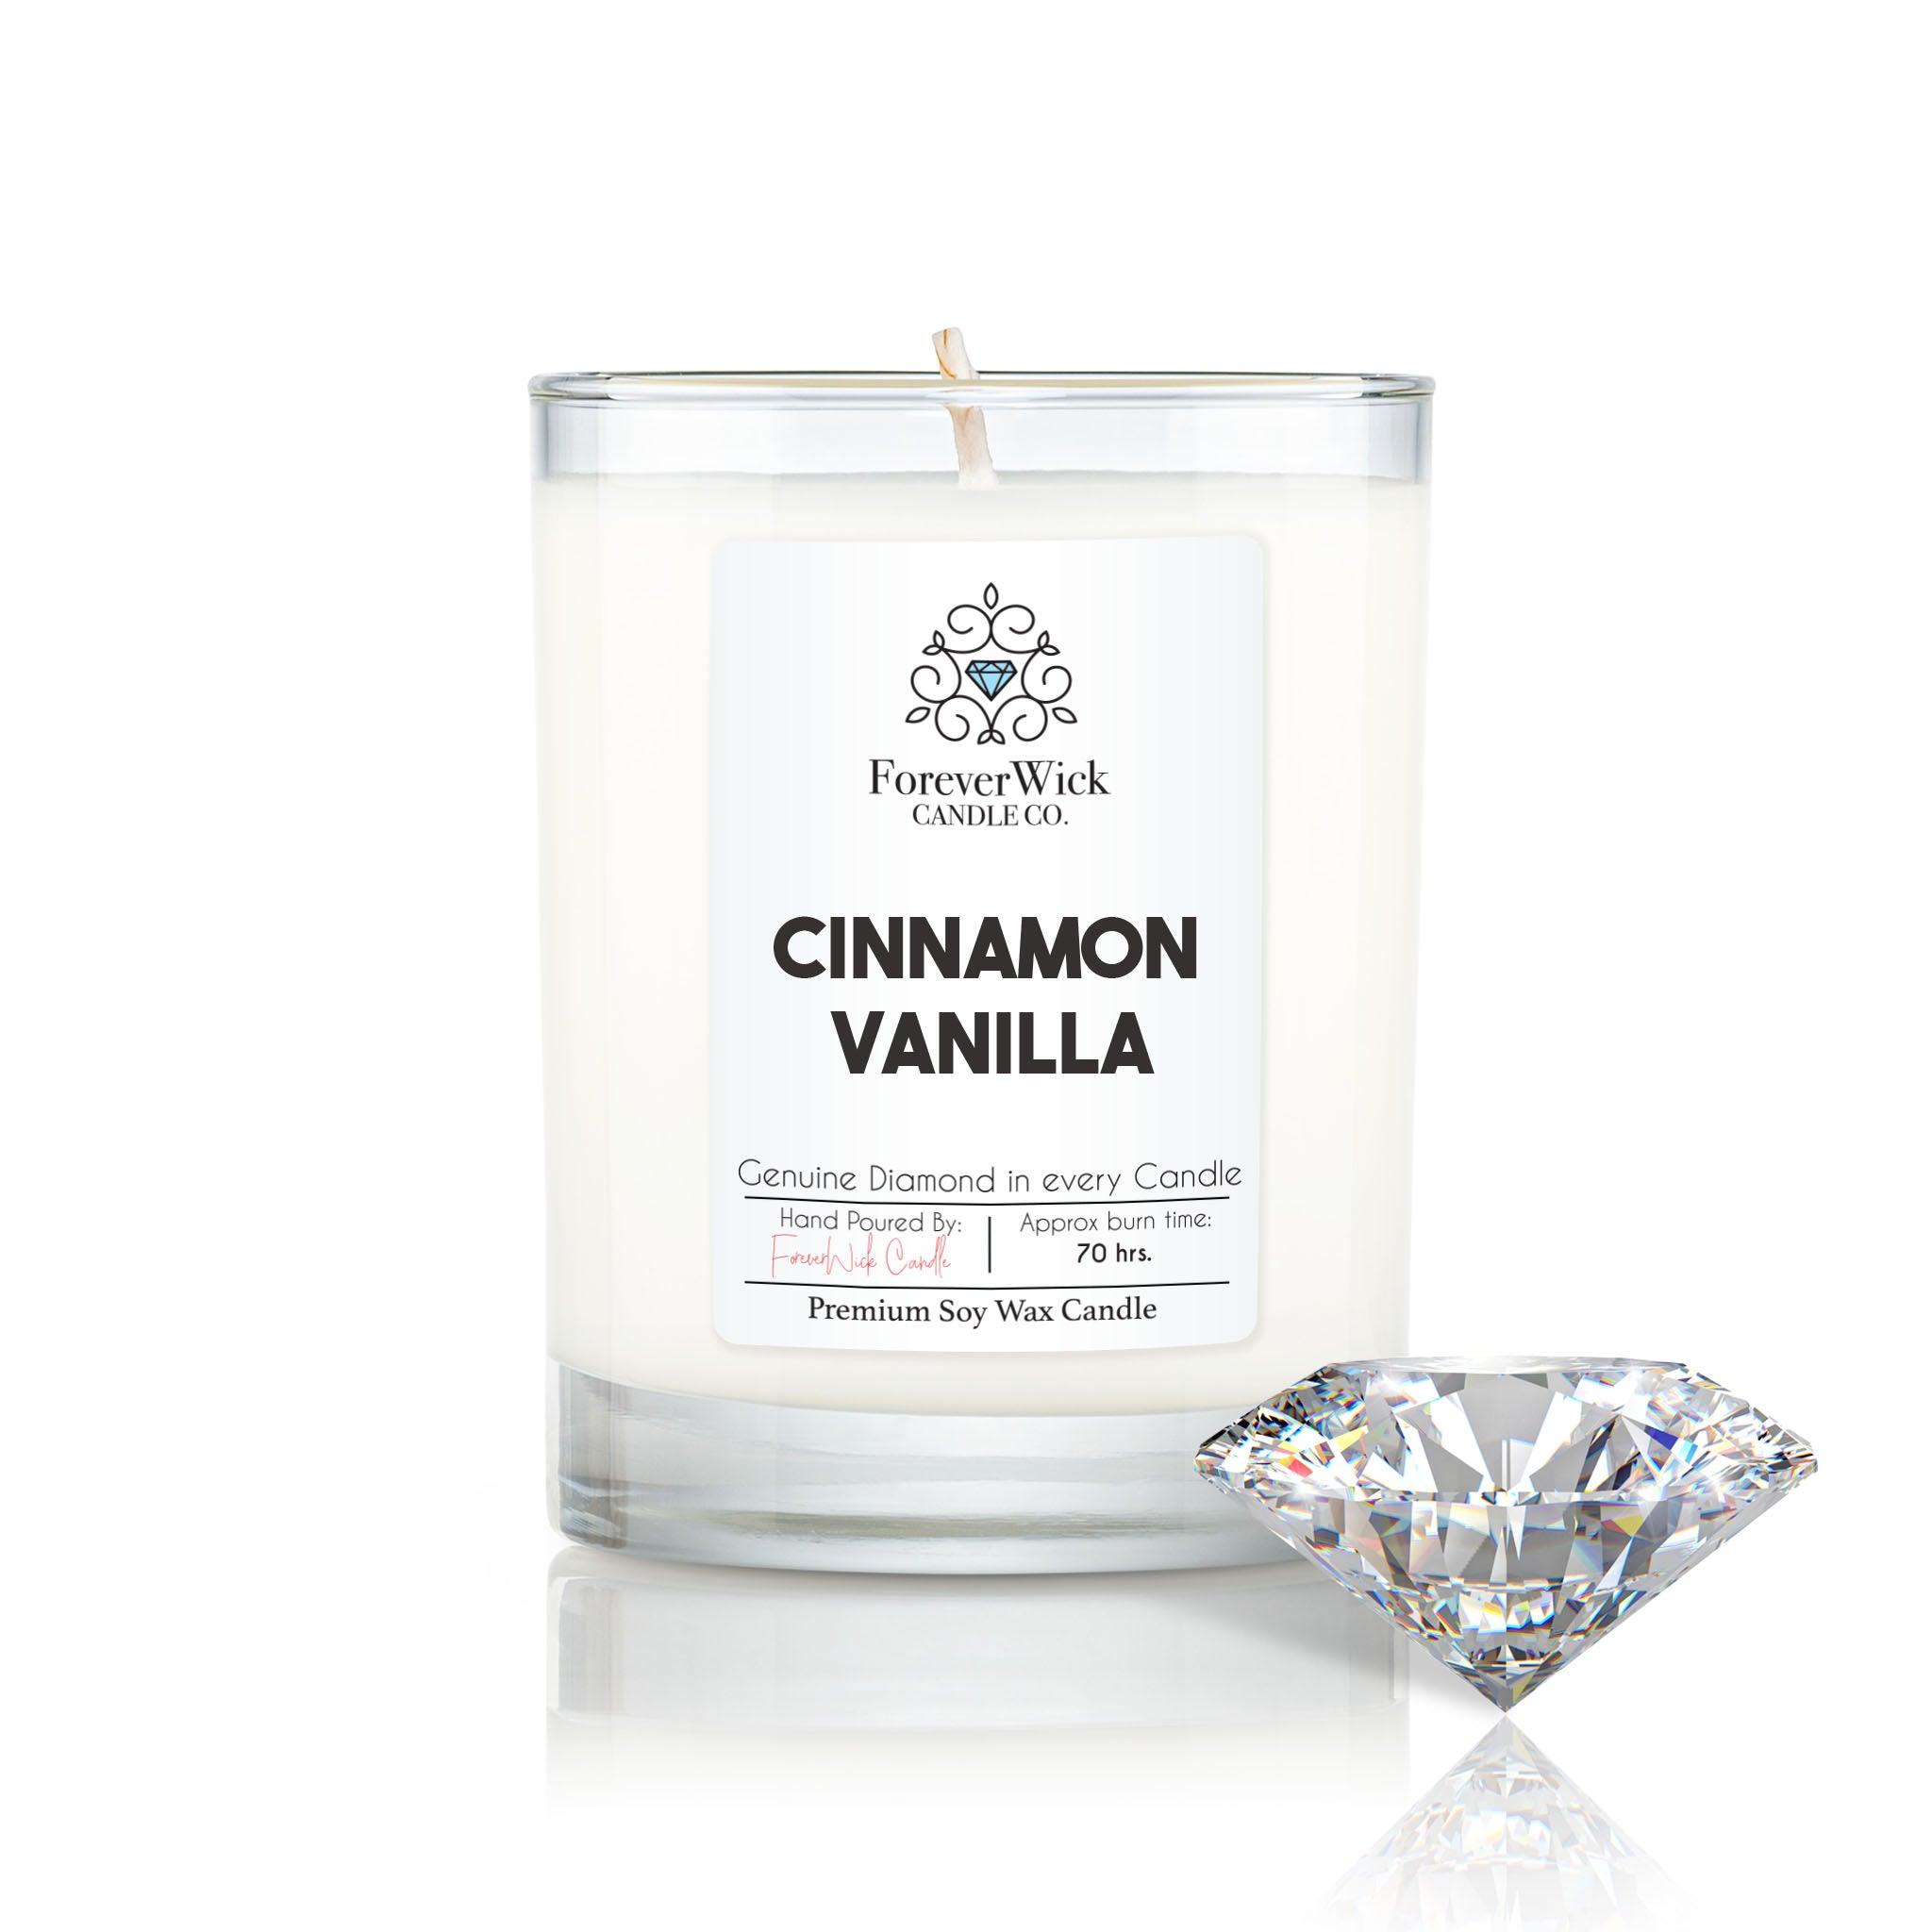 Cinnamon Vanilla Diamond Candle